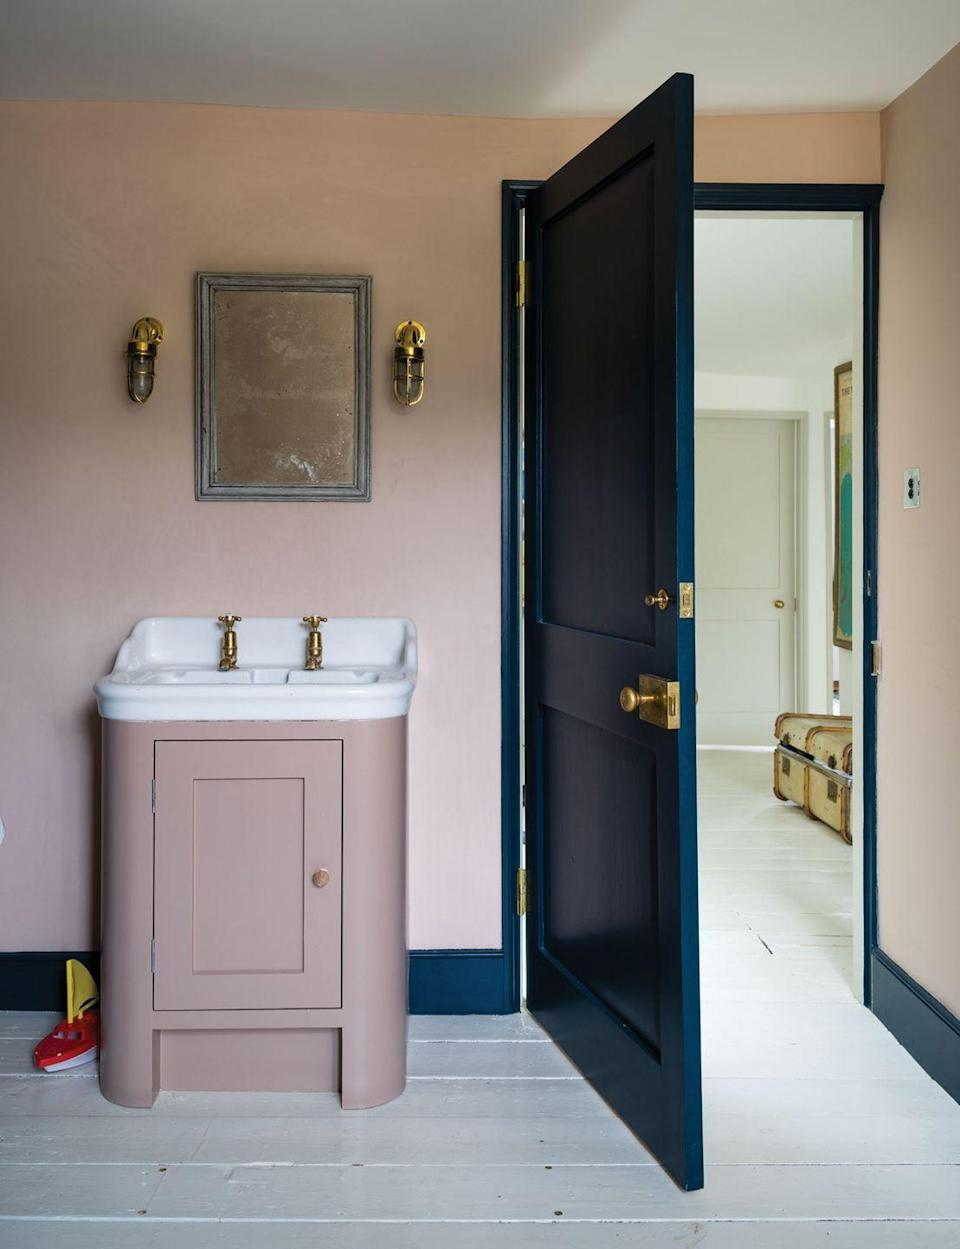 """<p>Soft pink and a strong midnight blue create a vintage feel, especially when used in homes with period features. Whilst a lighter blue would make this scheme fairly saccharine, suitable for a modern kitchen or bedroom, the inky tones of a dark blue create a more sophisticated look.</p><p>Pictured: <a href=""""https://go.redirectingat.com?id=127X1599956&url=https%3A%2F%2Fwww.farrow-ball.com%2Fpaint-colours%2Fpink-ground&sref=https%3A%2F%2Fwww.countryliving.com%2Fuk%2Fhomes-interiors%2Finteriors%2Fg37384959%2Fcolour-combinations%2F"""" rel=""""nofollow noopener"""" target=""""_blank"""" data-ylk=""""slk:Pink Ground"""" class=""""link rapid-noclick-resp"""">Pink Ground</a> and <a href=""""https://go.redirectingat.com?id=127X1599956&url=https%3A%2F%2Fwww.farrow-ball.com%2Fpaint-colours%2Fhague-blue&sref=https%3A%2F%2Fwww.countryliving.com%2Fuk%2Fhomes-interiors%2Finteriors%2Fg37384959%2Fcolour-combinations%2F"""" rel=""""nofollow noopener"""" target=""""_blank"""" data-ylk=""""slk:Hague Blue"""" class=""""link rapid-noclick-resp"""">Hague Blue</a>, both by Farrow & Ball</p>"""